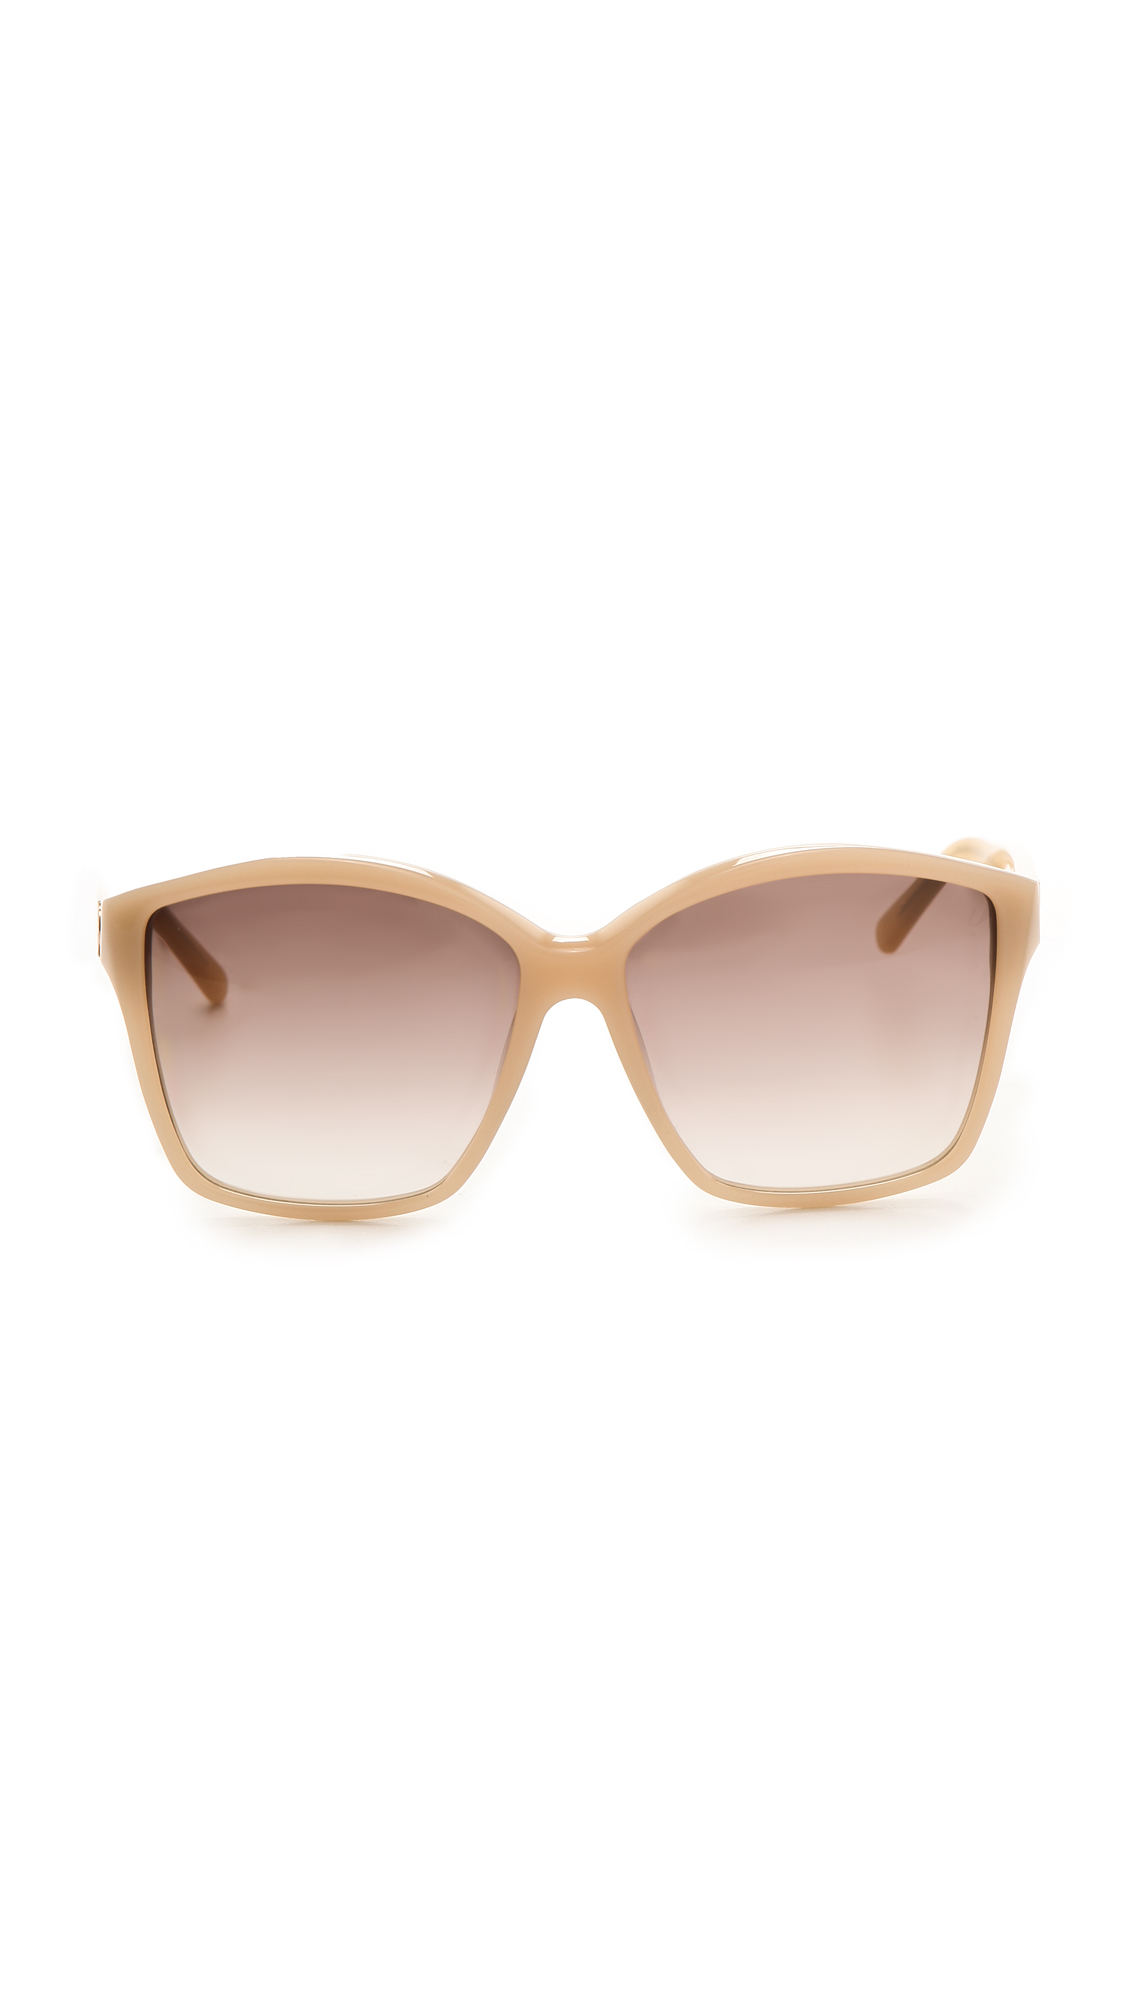 936485a509dec Ray Ban Glasses 8402 – Southern California Weather Force